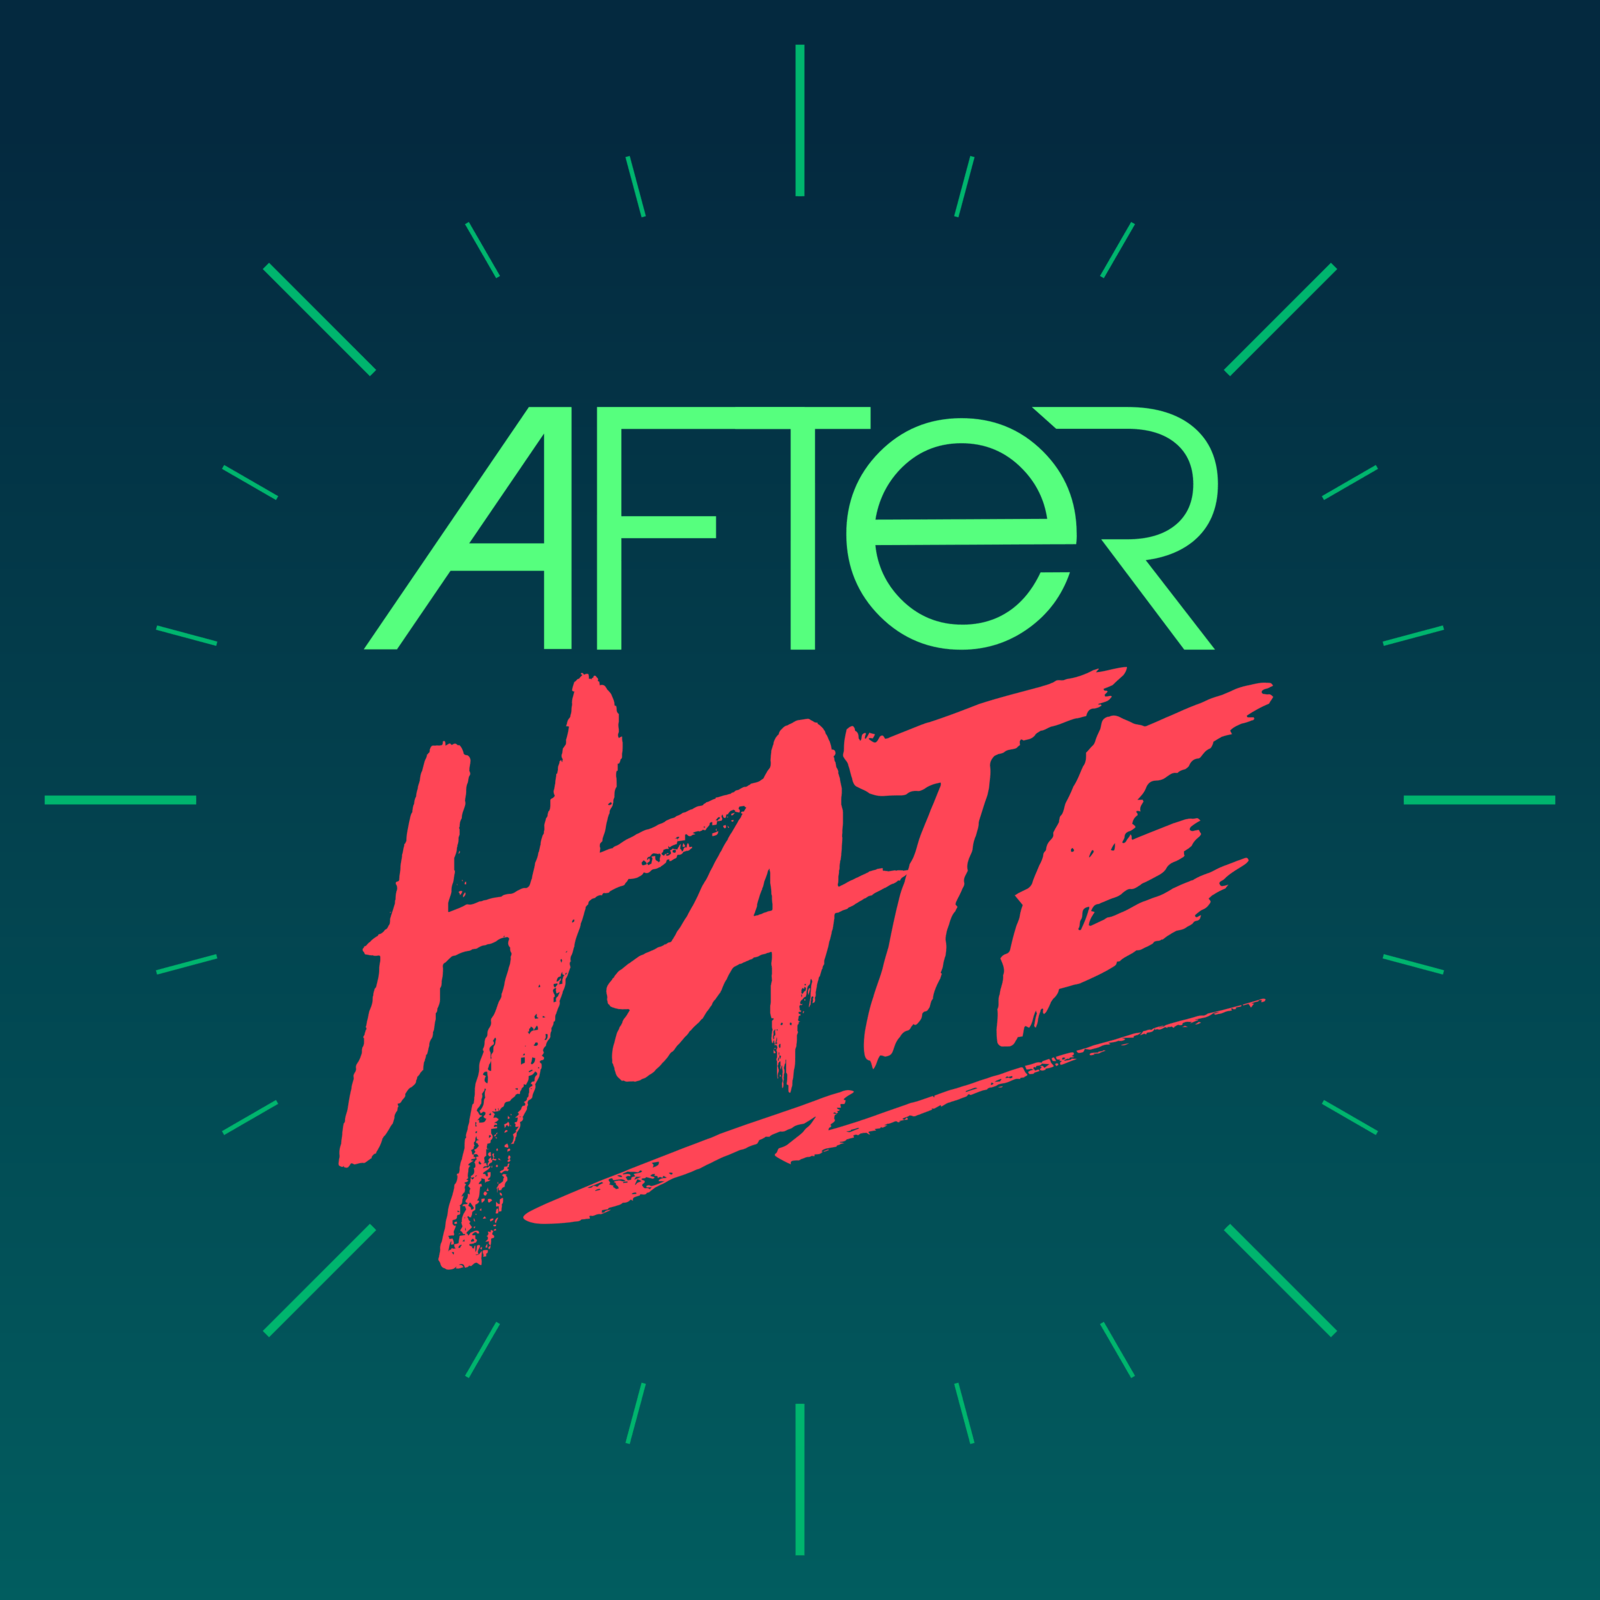 After Hate